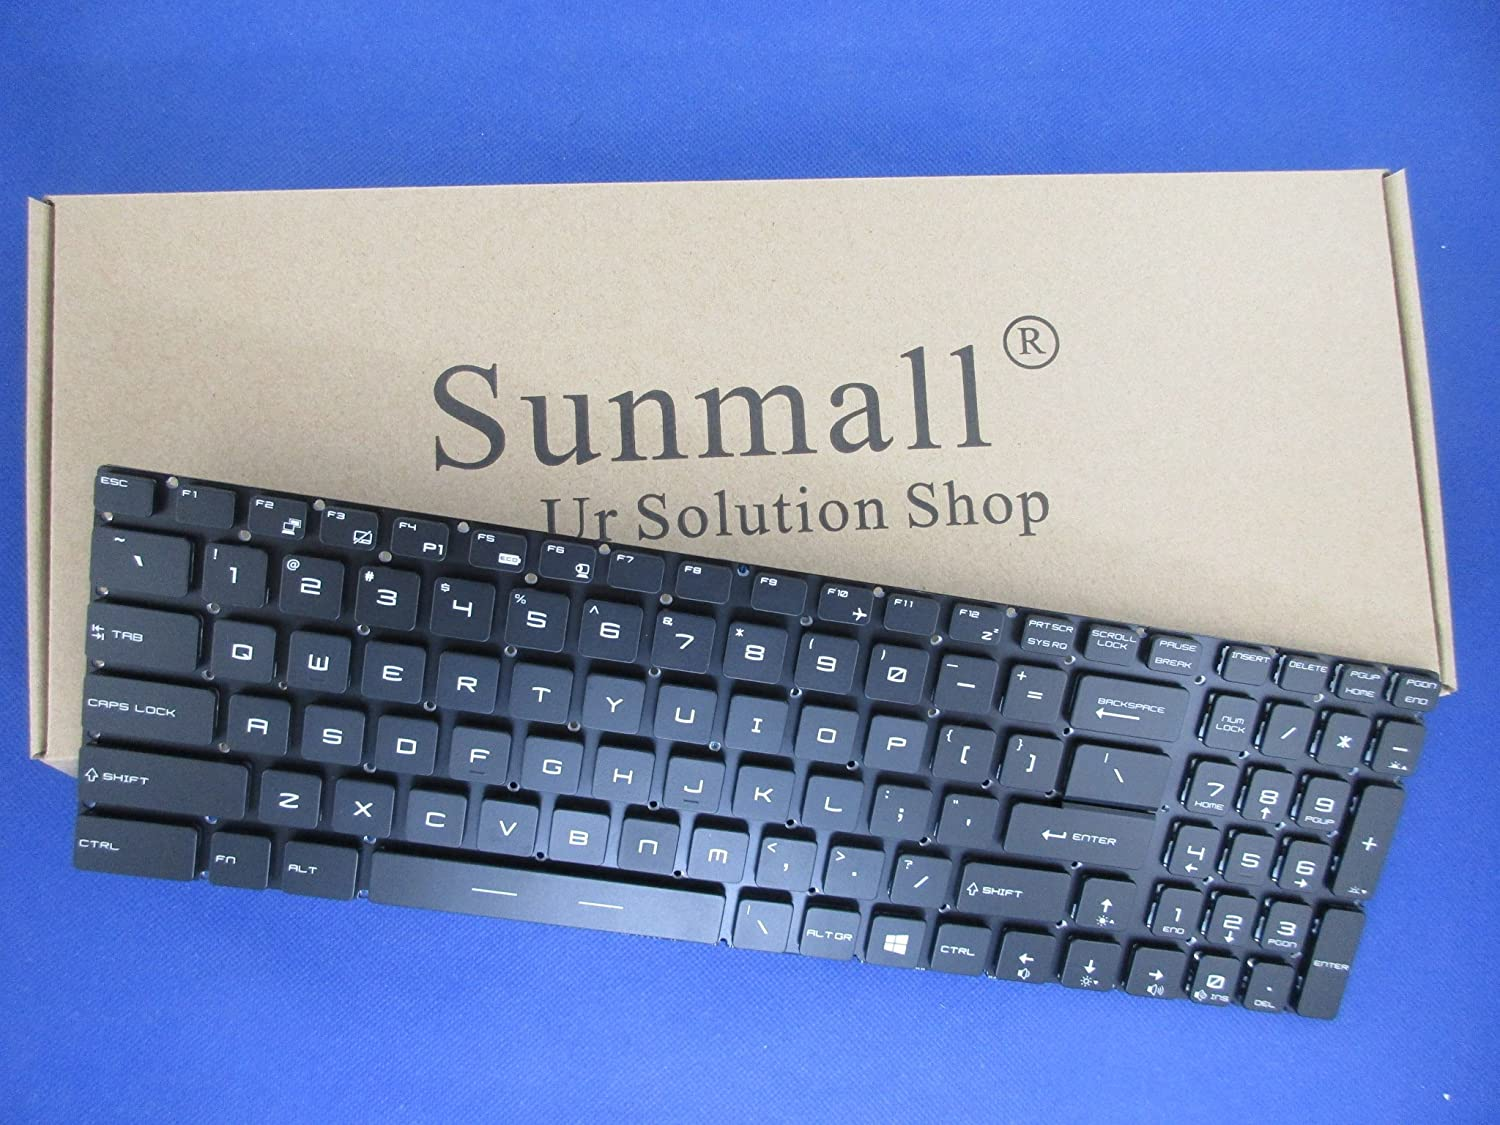 SUNMALL Laptop Replacement Keyboard with Backlight for MSI GE62 GS60 GS70 GS72 GE72 GT72 MS-1772 Series Part Number V143422AK1 19000184 US Layout